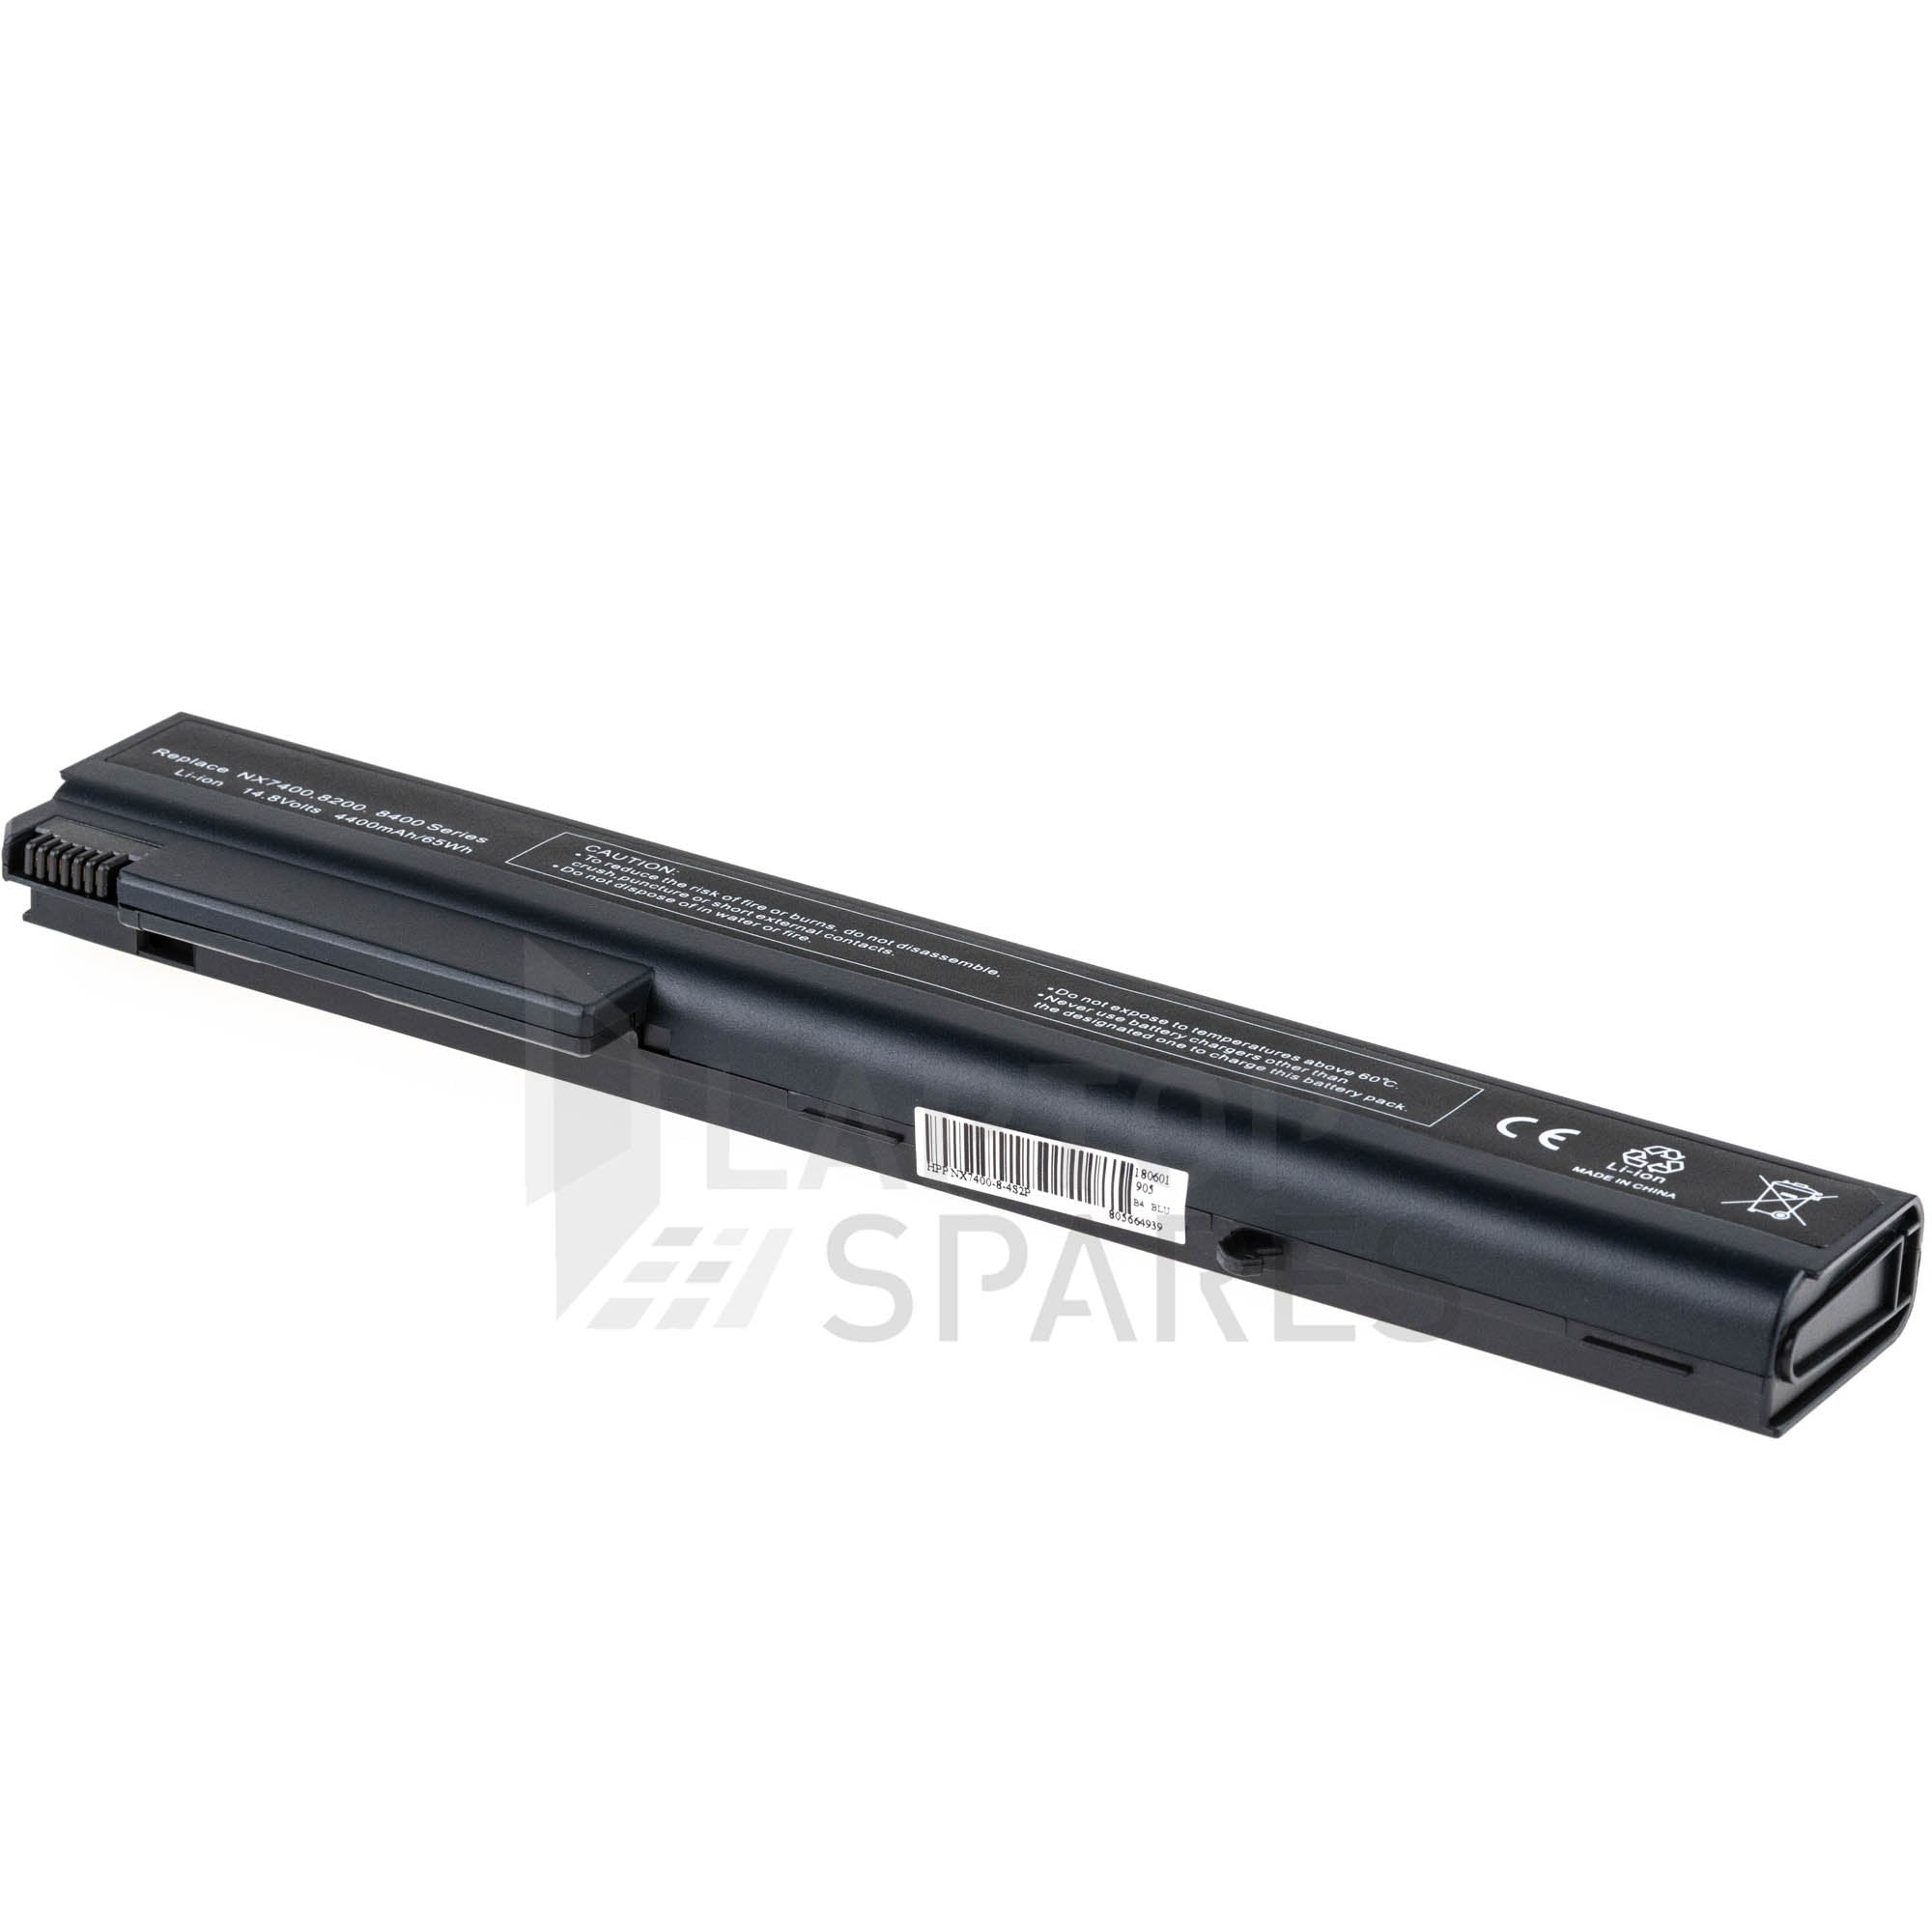 HP Compaq  nx9420 4400mAh 8 Cell Battery